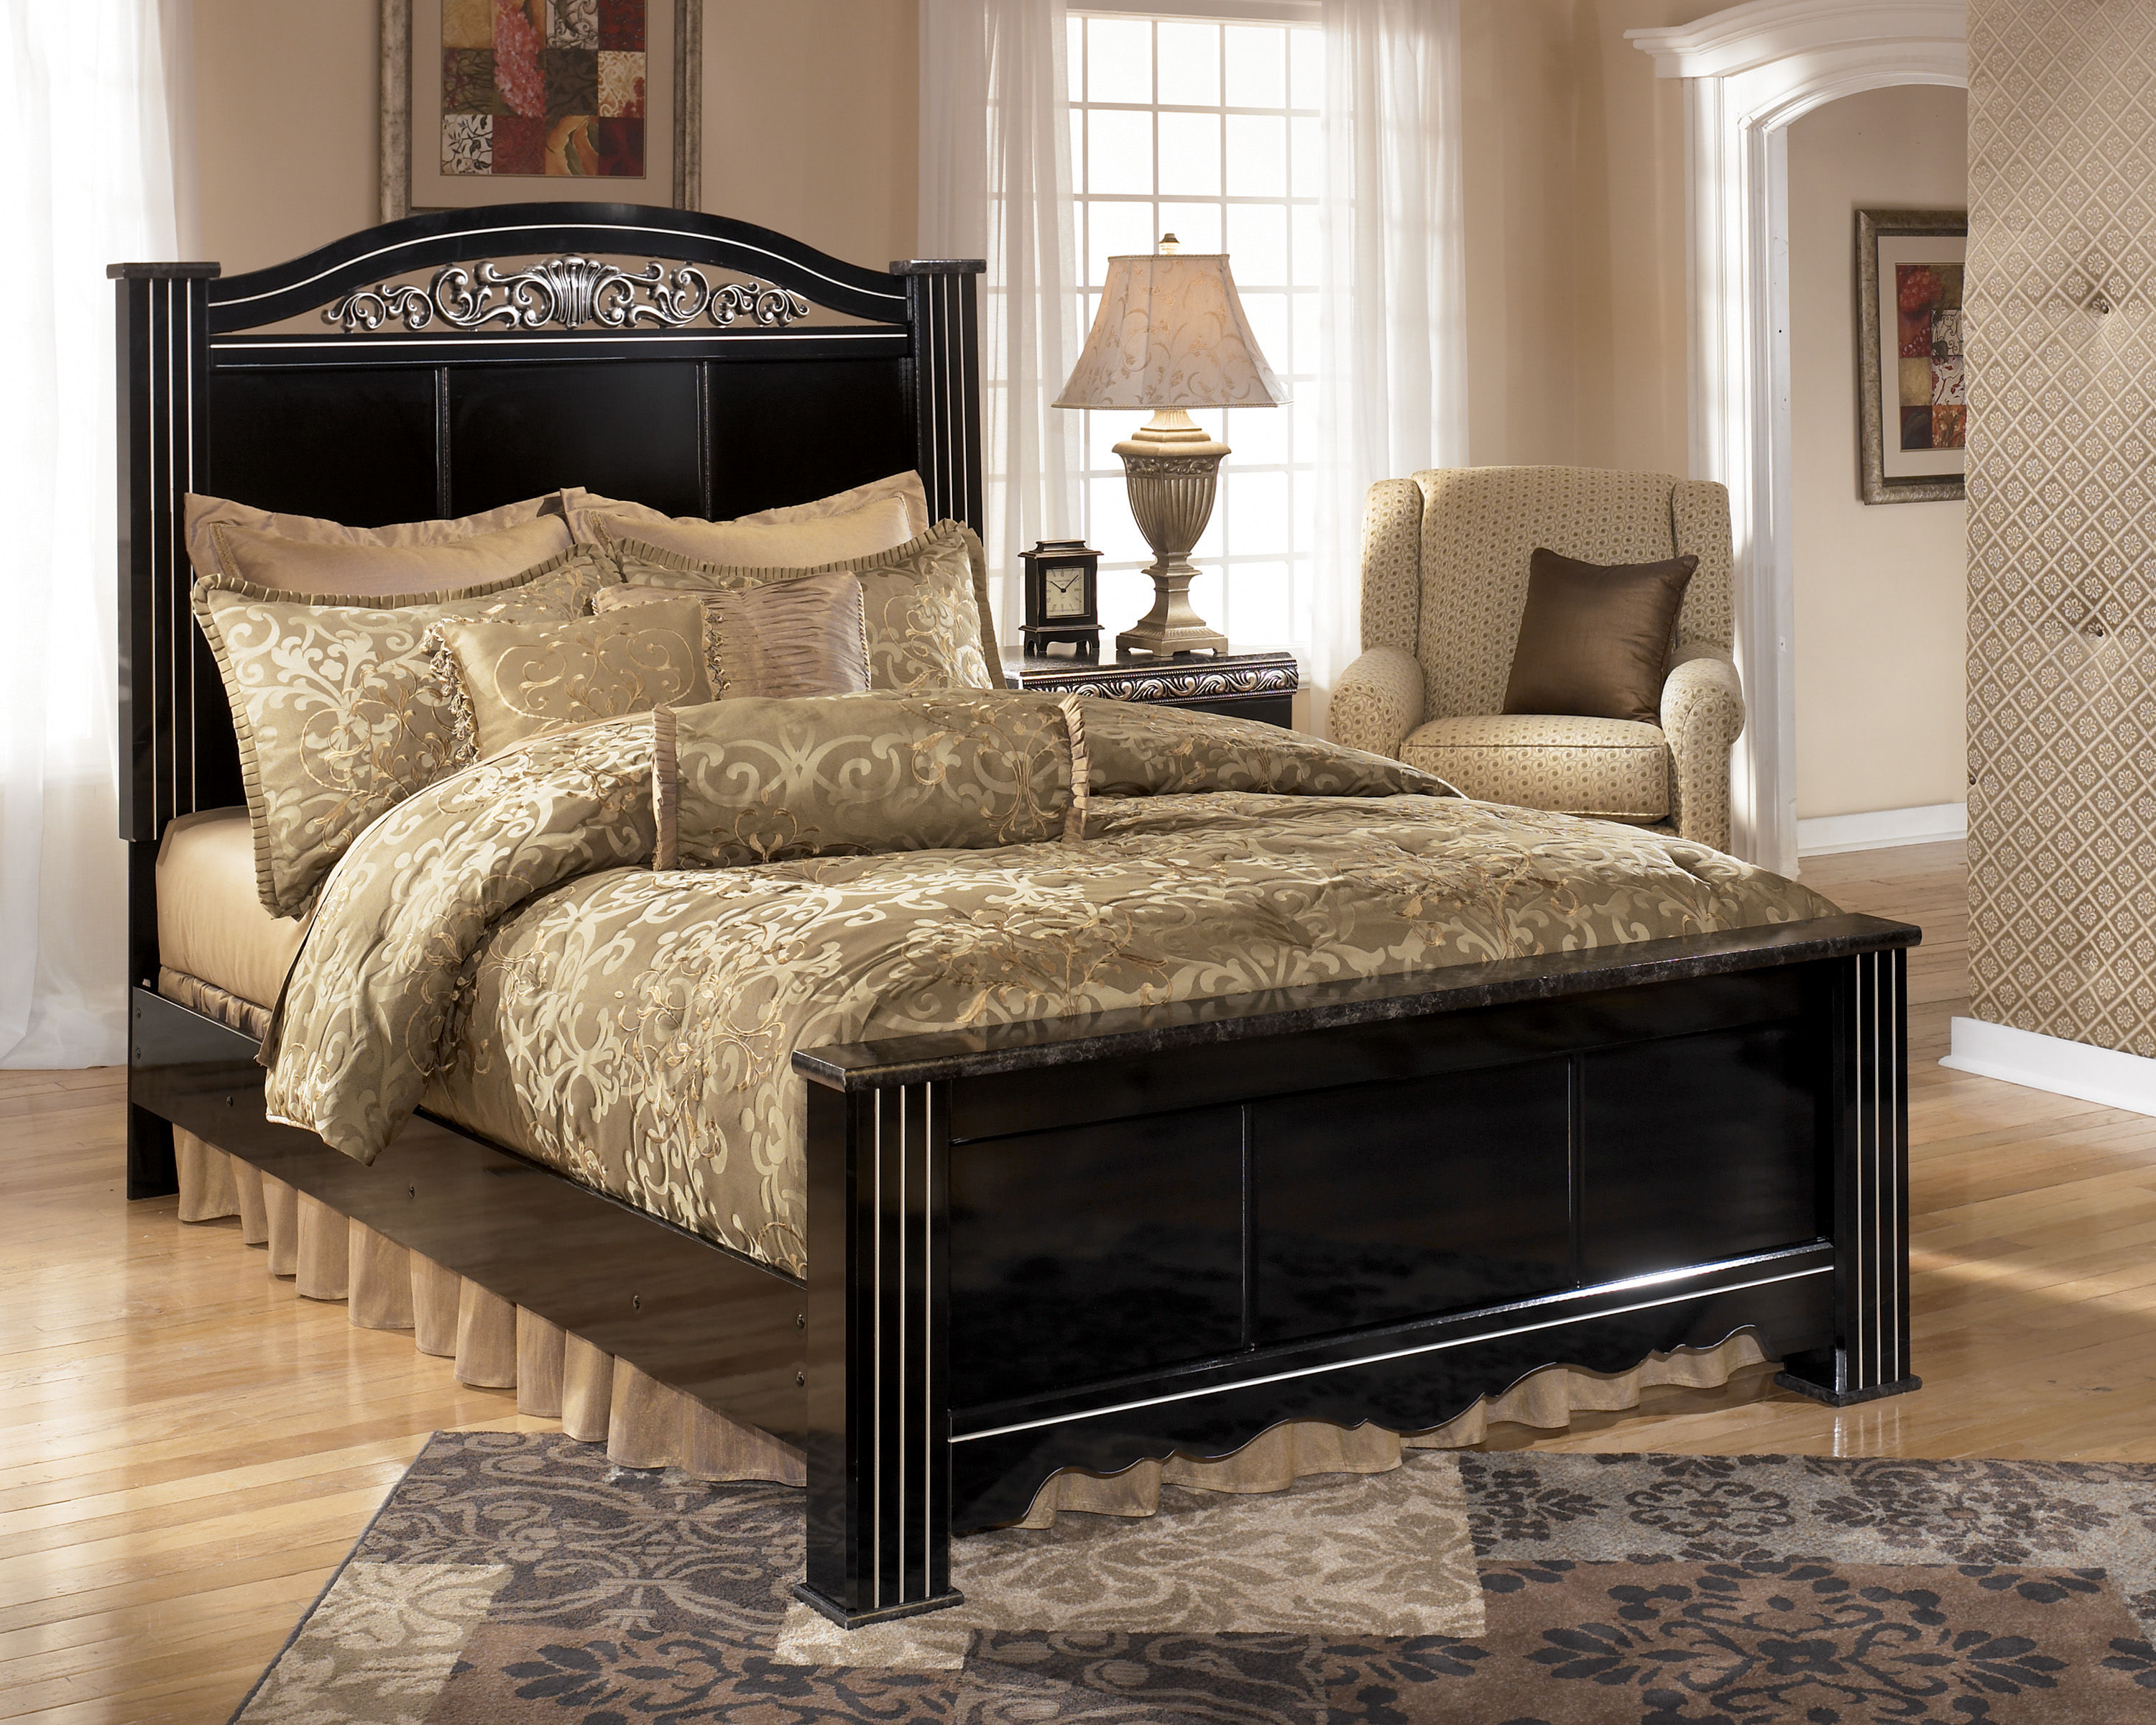 Ashley furniture constellations black king poster bed - Discontinued ashley bedroom furniture ...